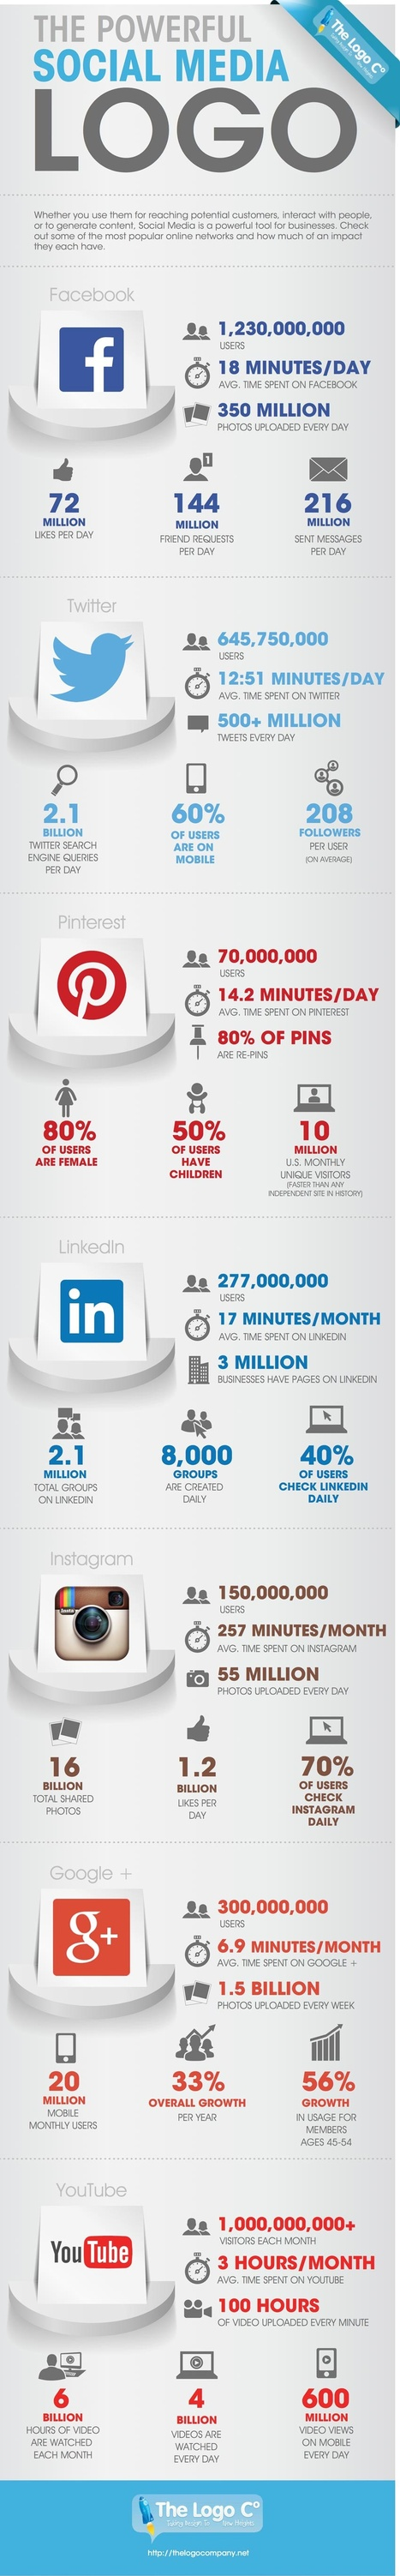 The Power Of Social Media #INFOGRAPHIC | Personal Branding and Professional networks | Scoop.it